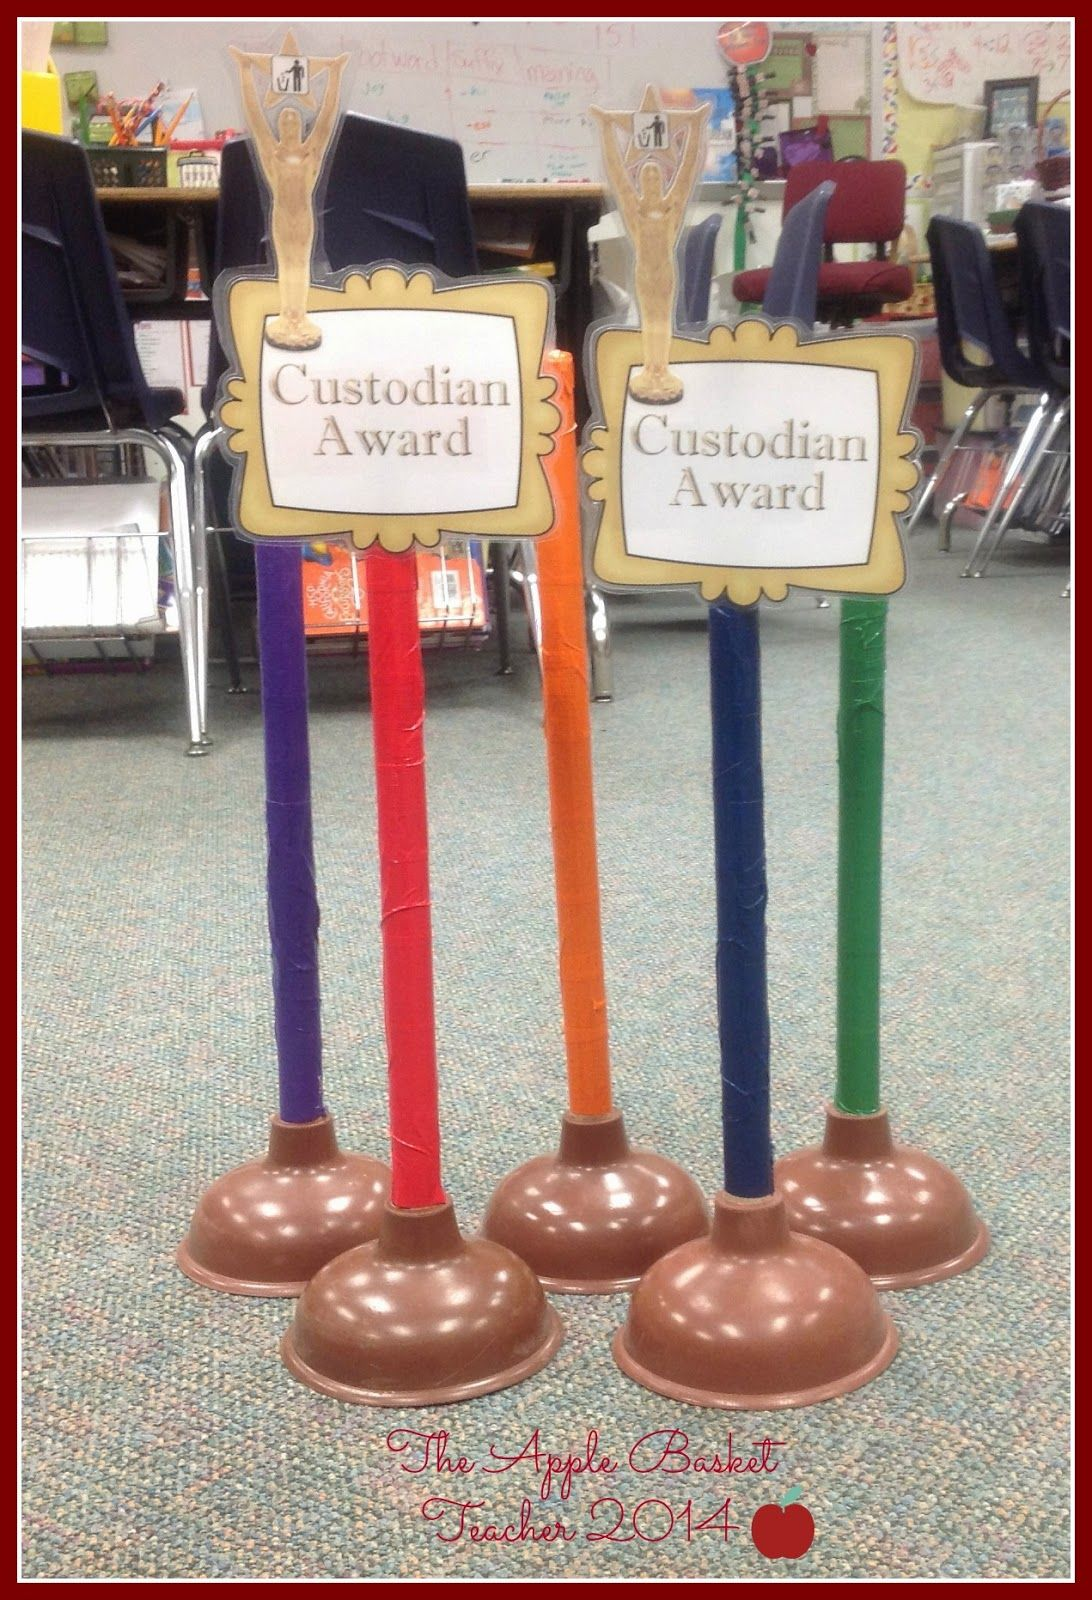 Custodian Awards~made from plungers...custodian places ...